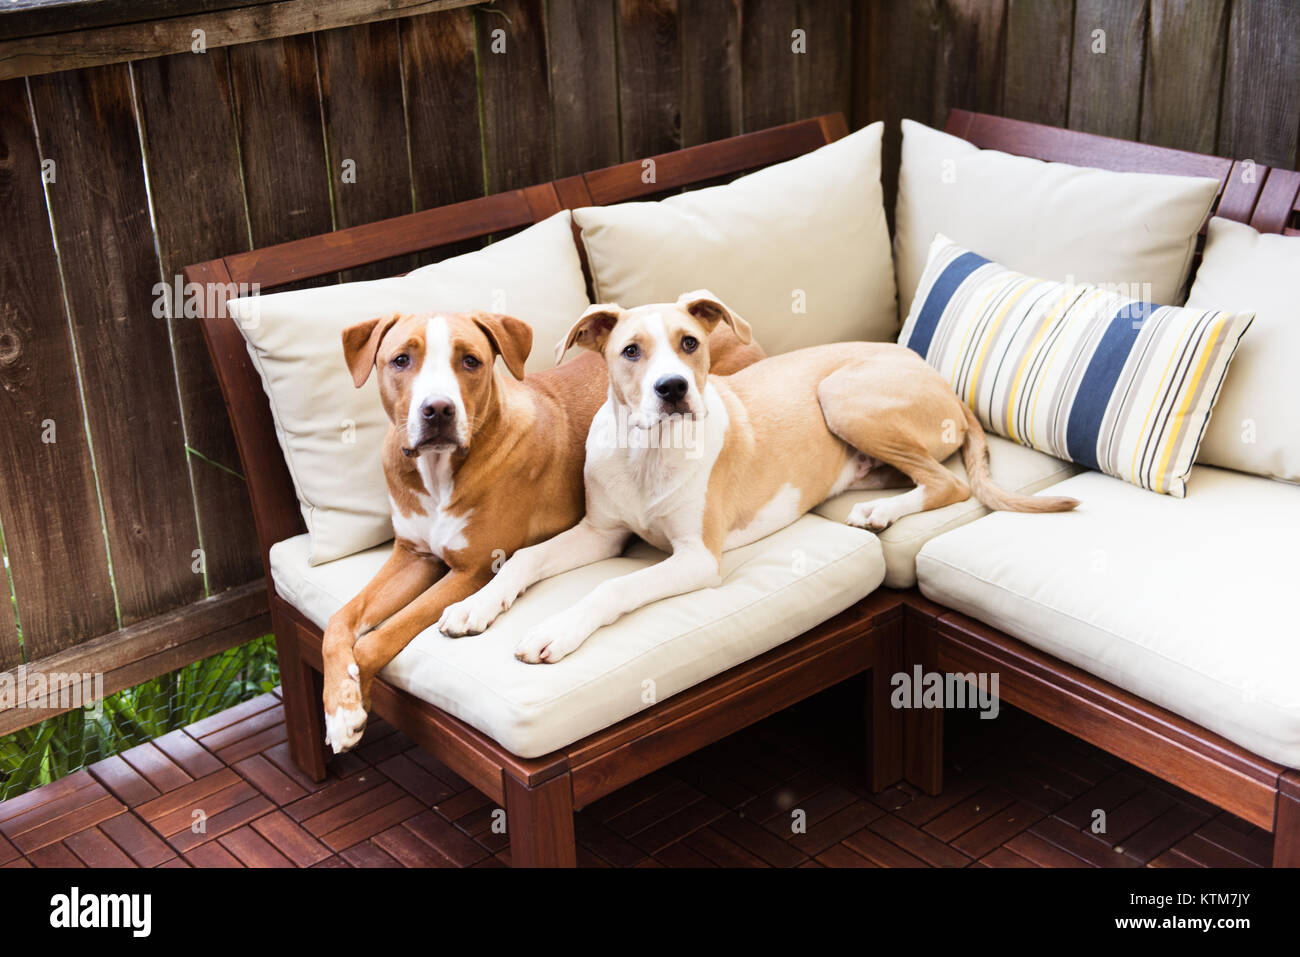 Two Young Dogs Relaxing on Outdoor Furniture - Stock Image - Outdoor Furniture Stock Photos & Outdoor Furniture Stock Images - Alamy